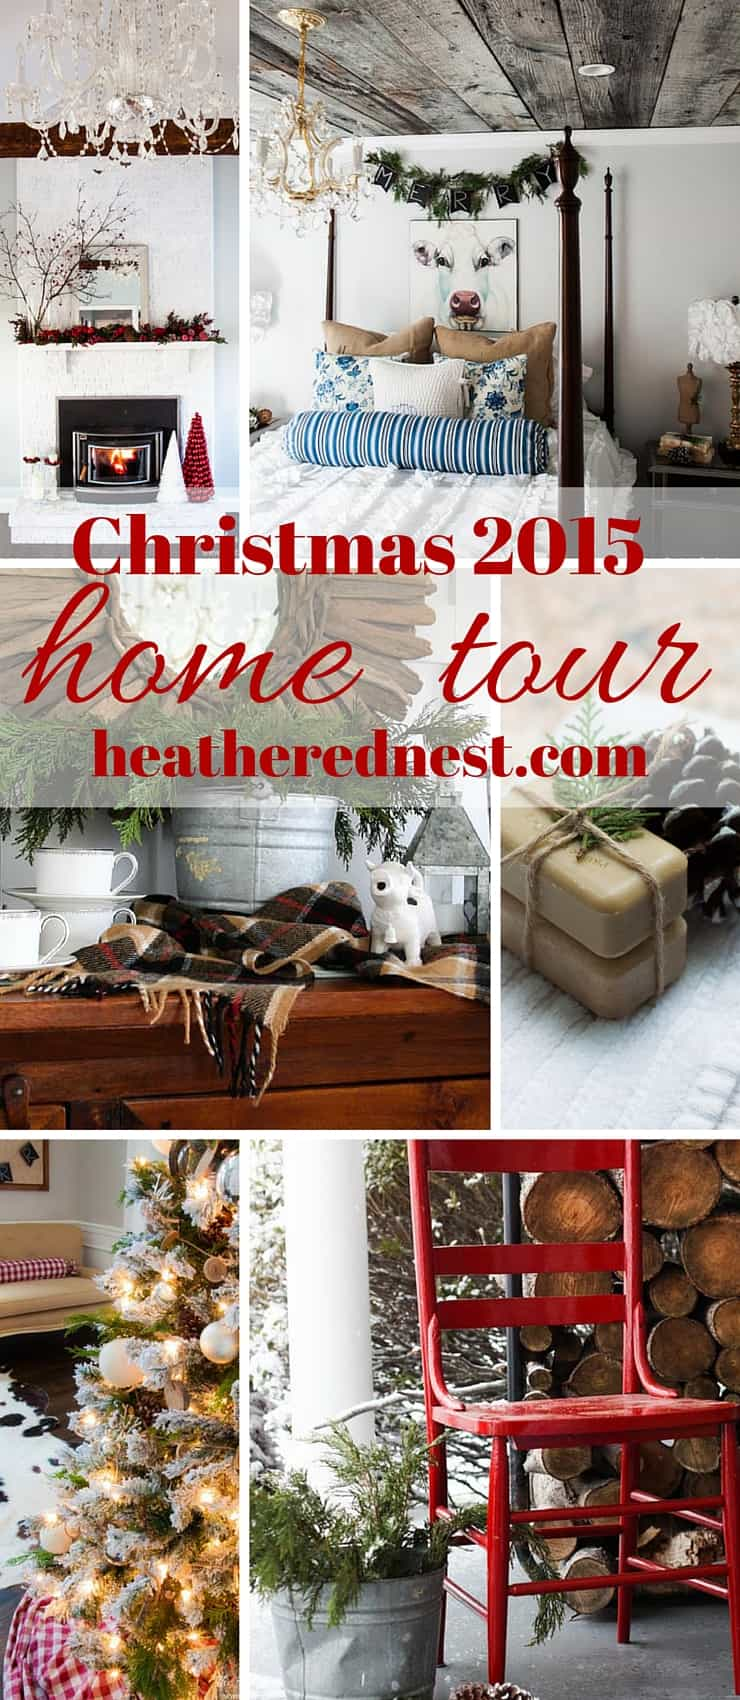 Join us at the heatherednest.com for our 2015 Christmas home tour with hometalk.com and countryliving.com. Lots of rustic, natural, inexpensive DIY decor inspiration.